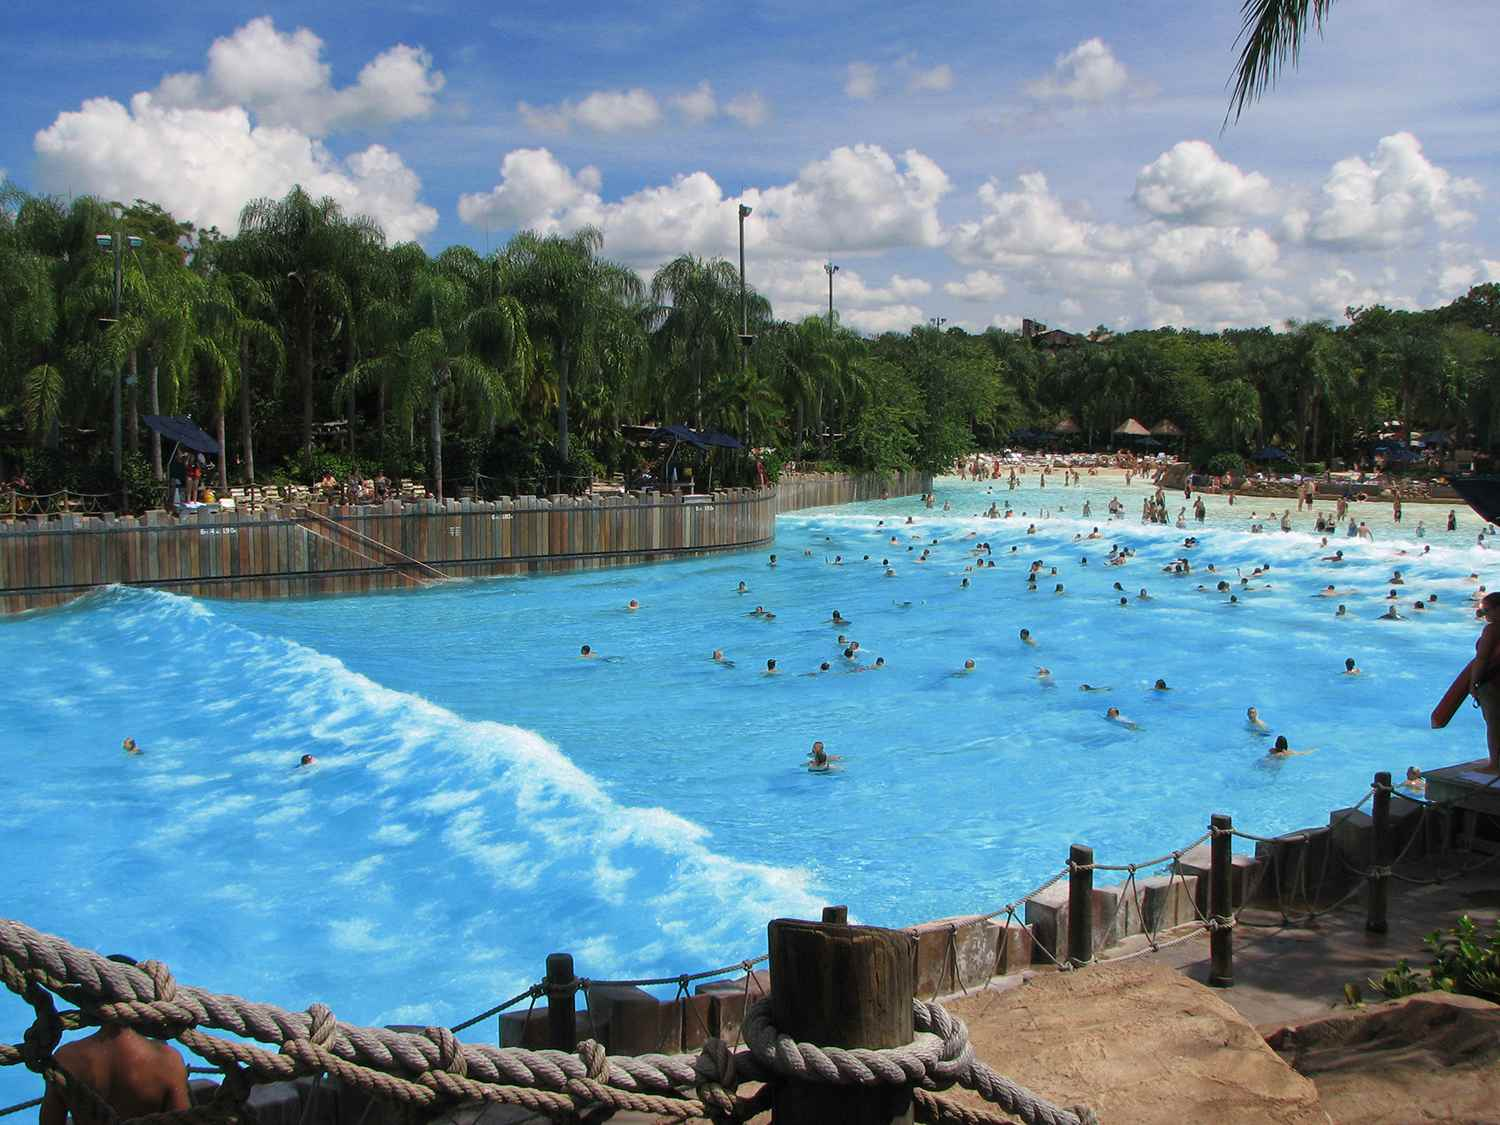 Overhead view of people swimming in the Typhoon Lagoon